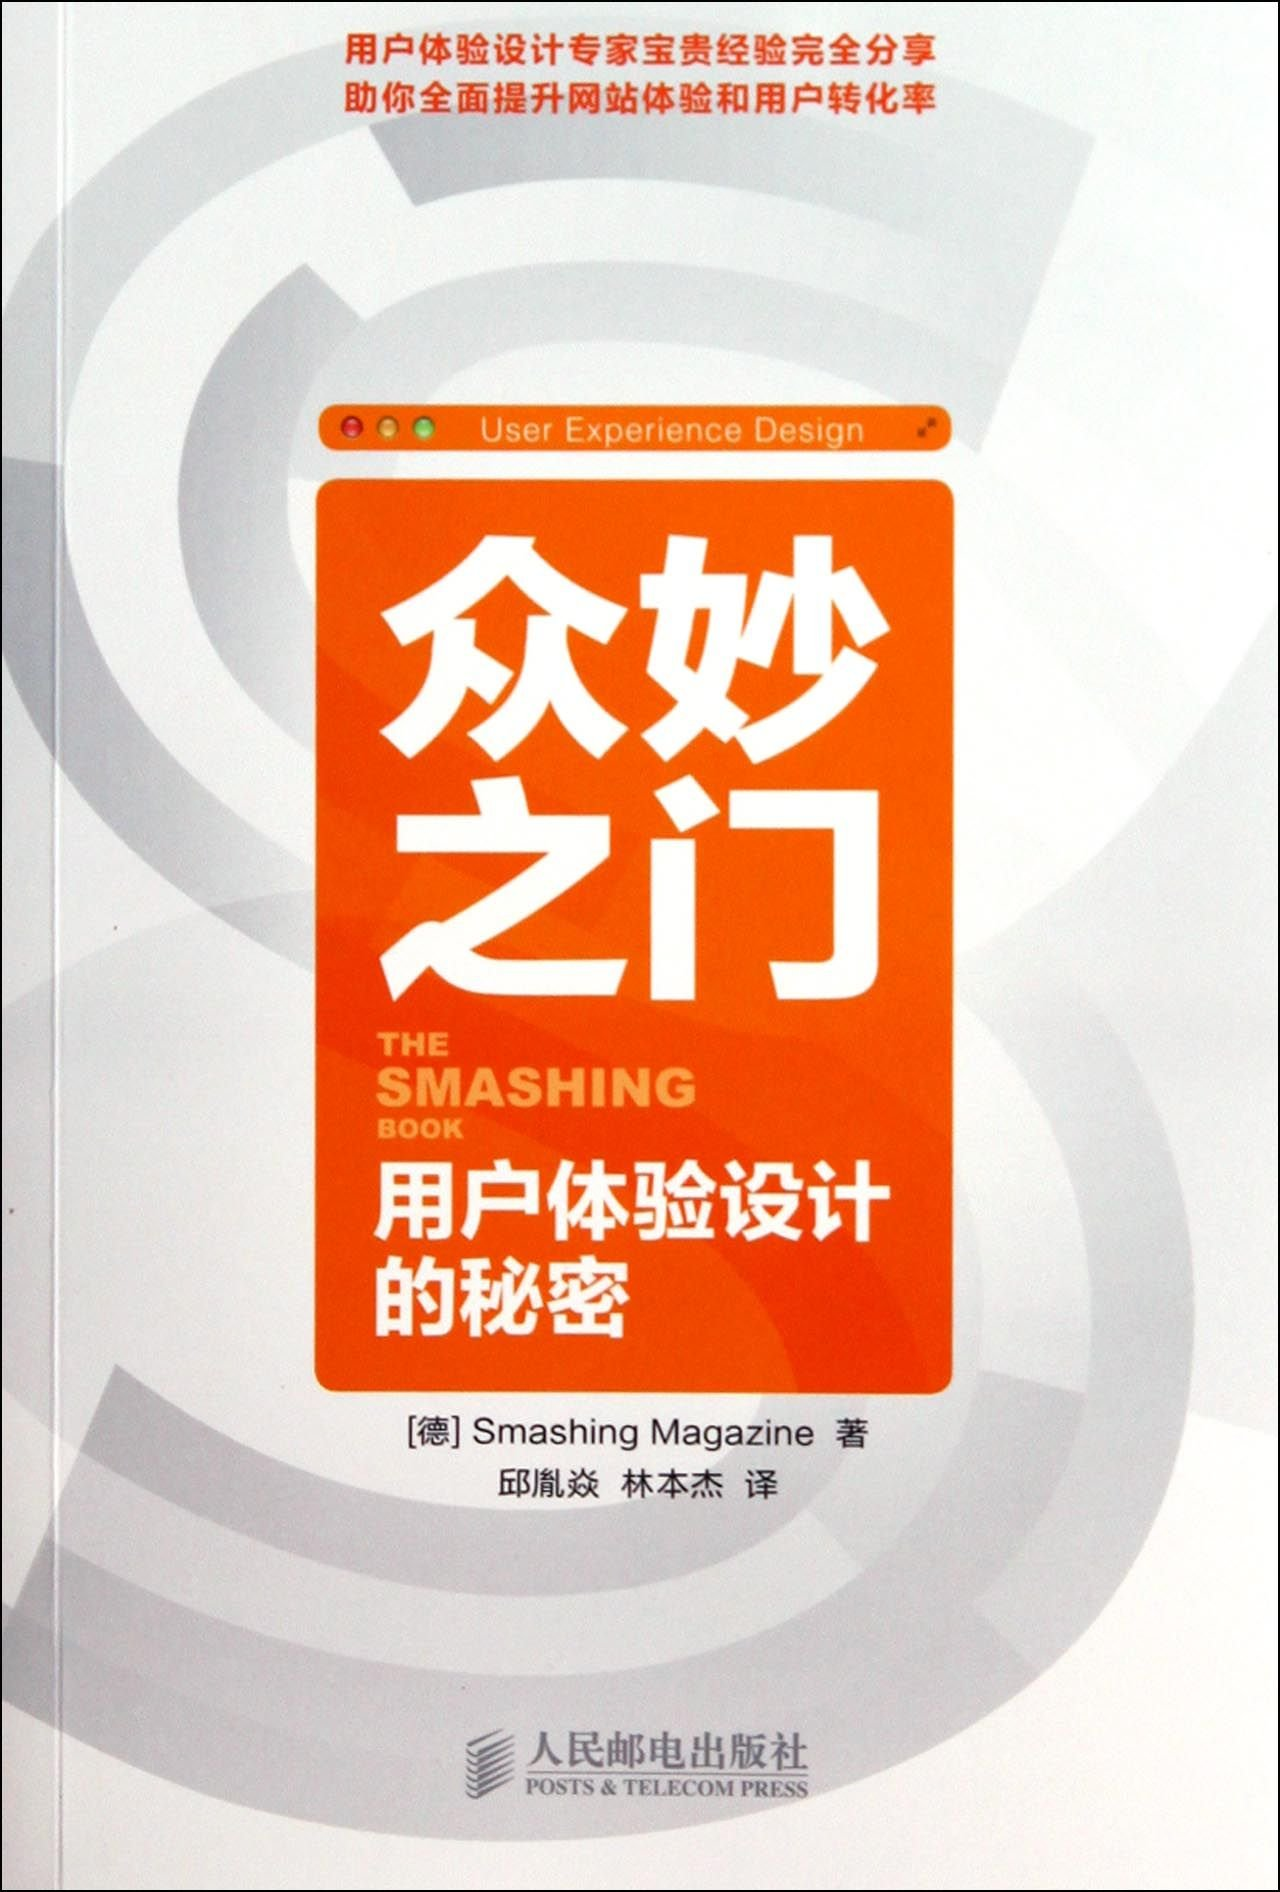 All The Wonderful Door User Experience Design Secrets Chinese Edition De Smashing Magazine 9787115349705 Amazon Com Books